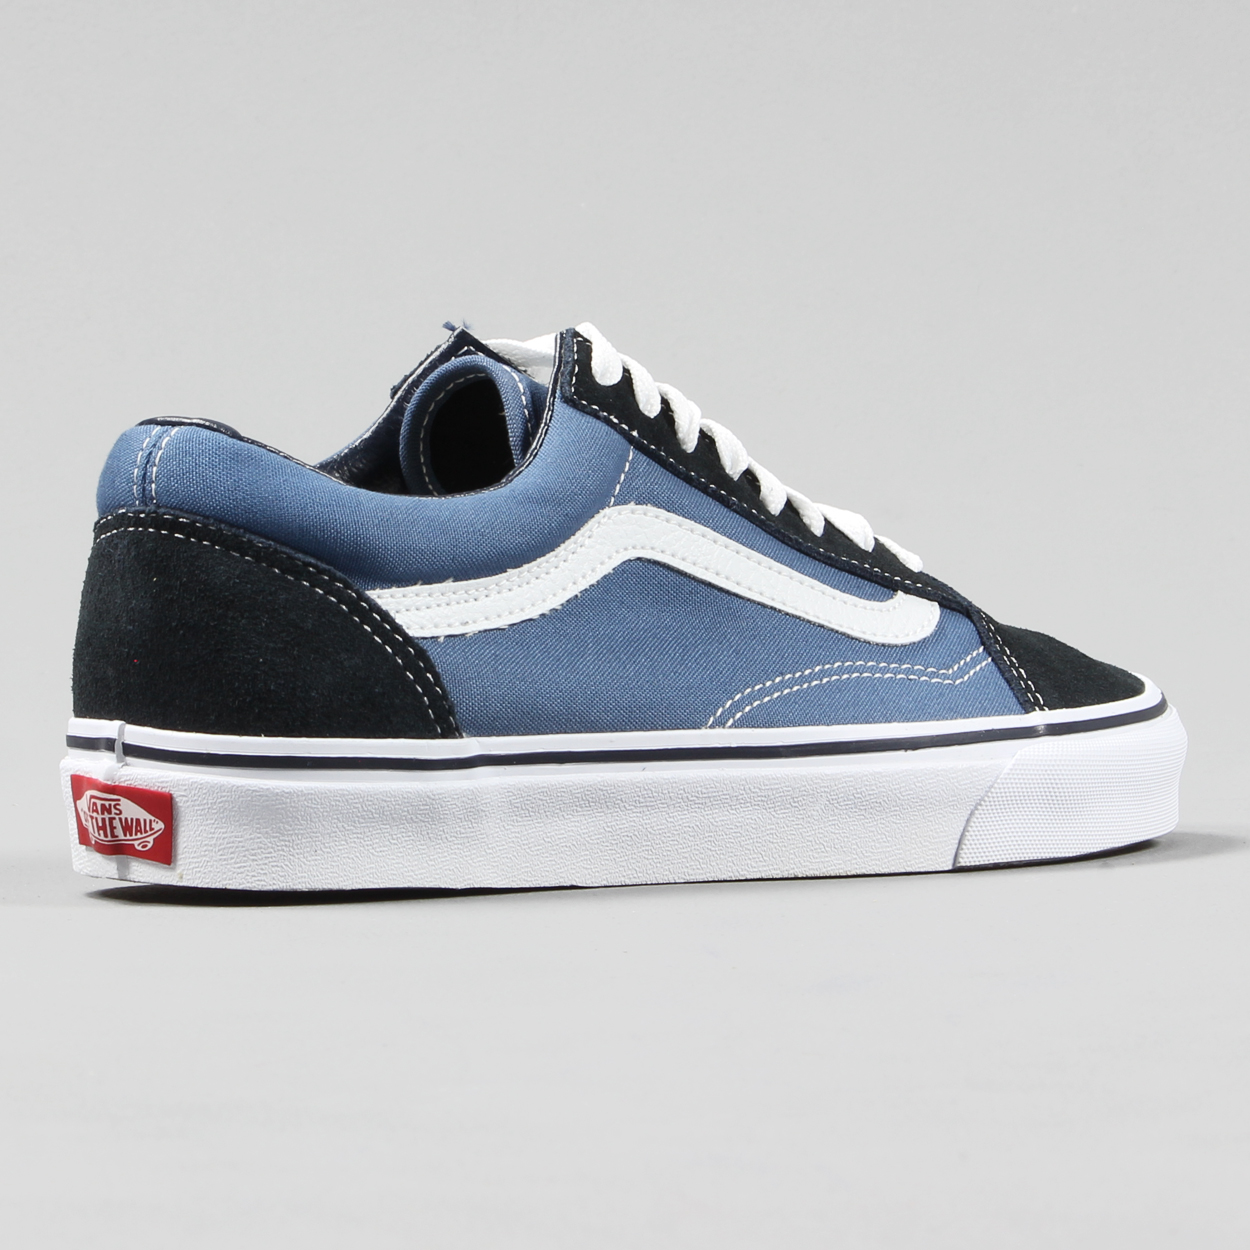 Vans Classic Old Skool s in the classic Navy colourway to provide style and  comfort to your feet. 3ea5c302db05